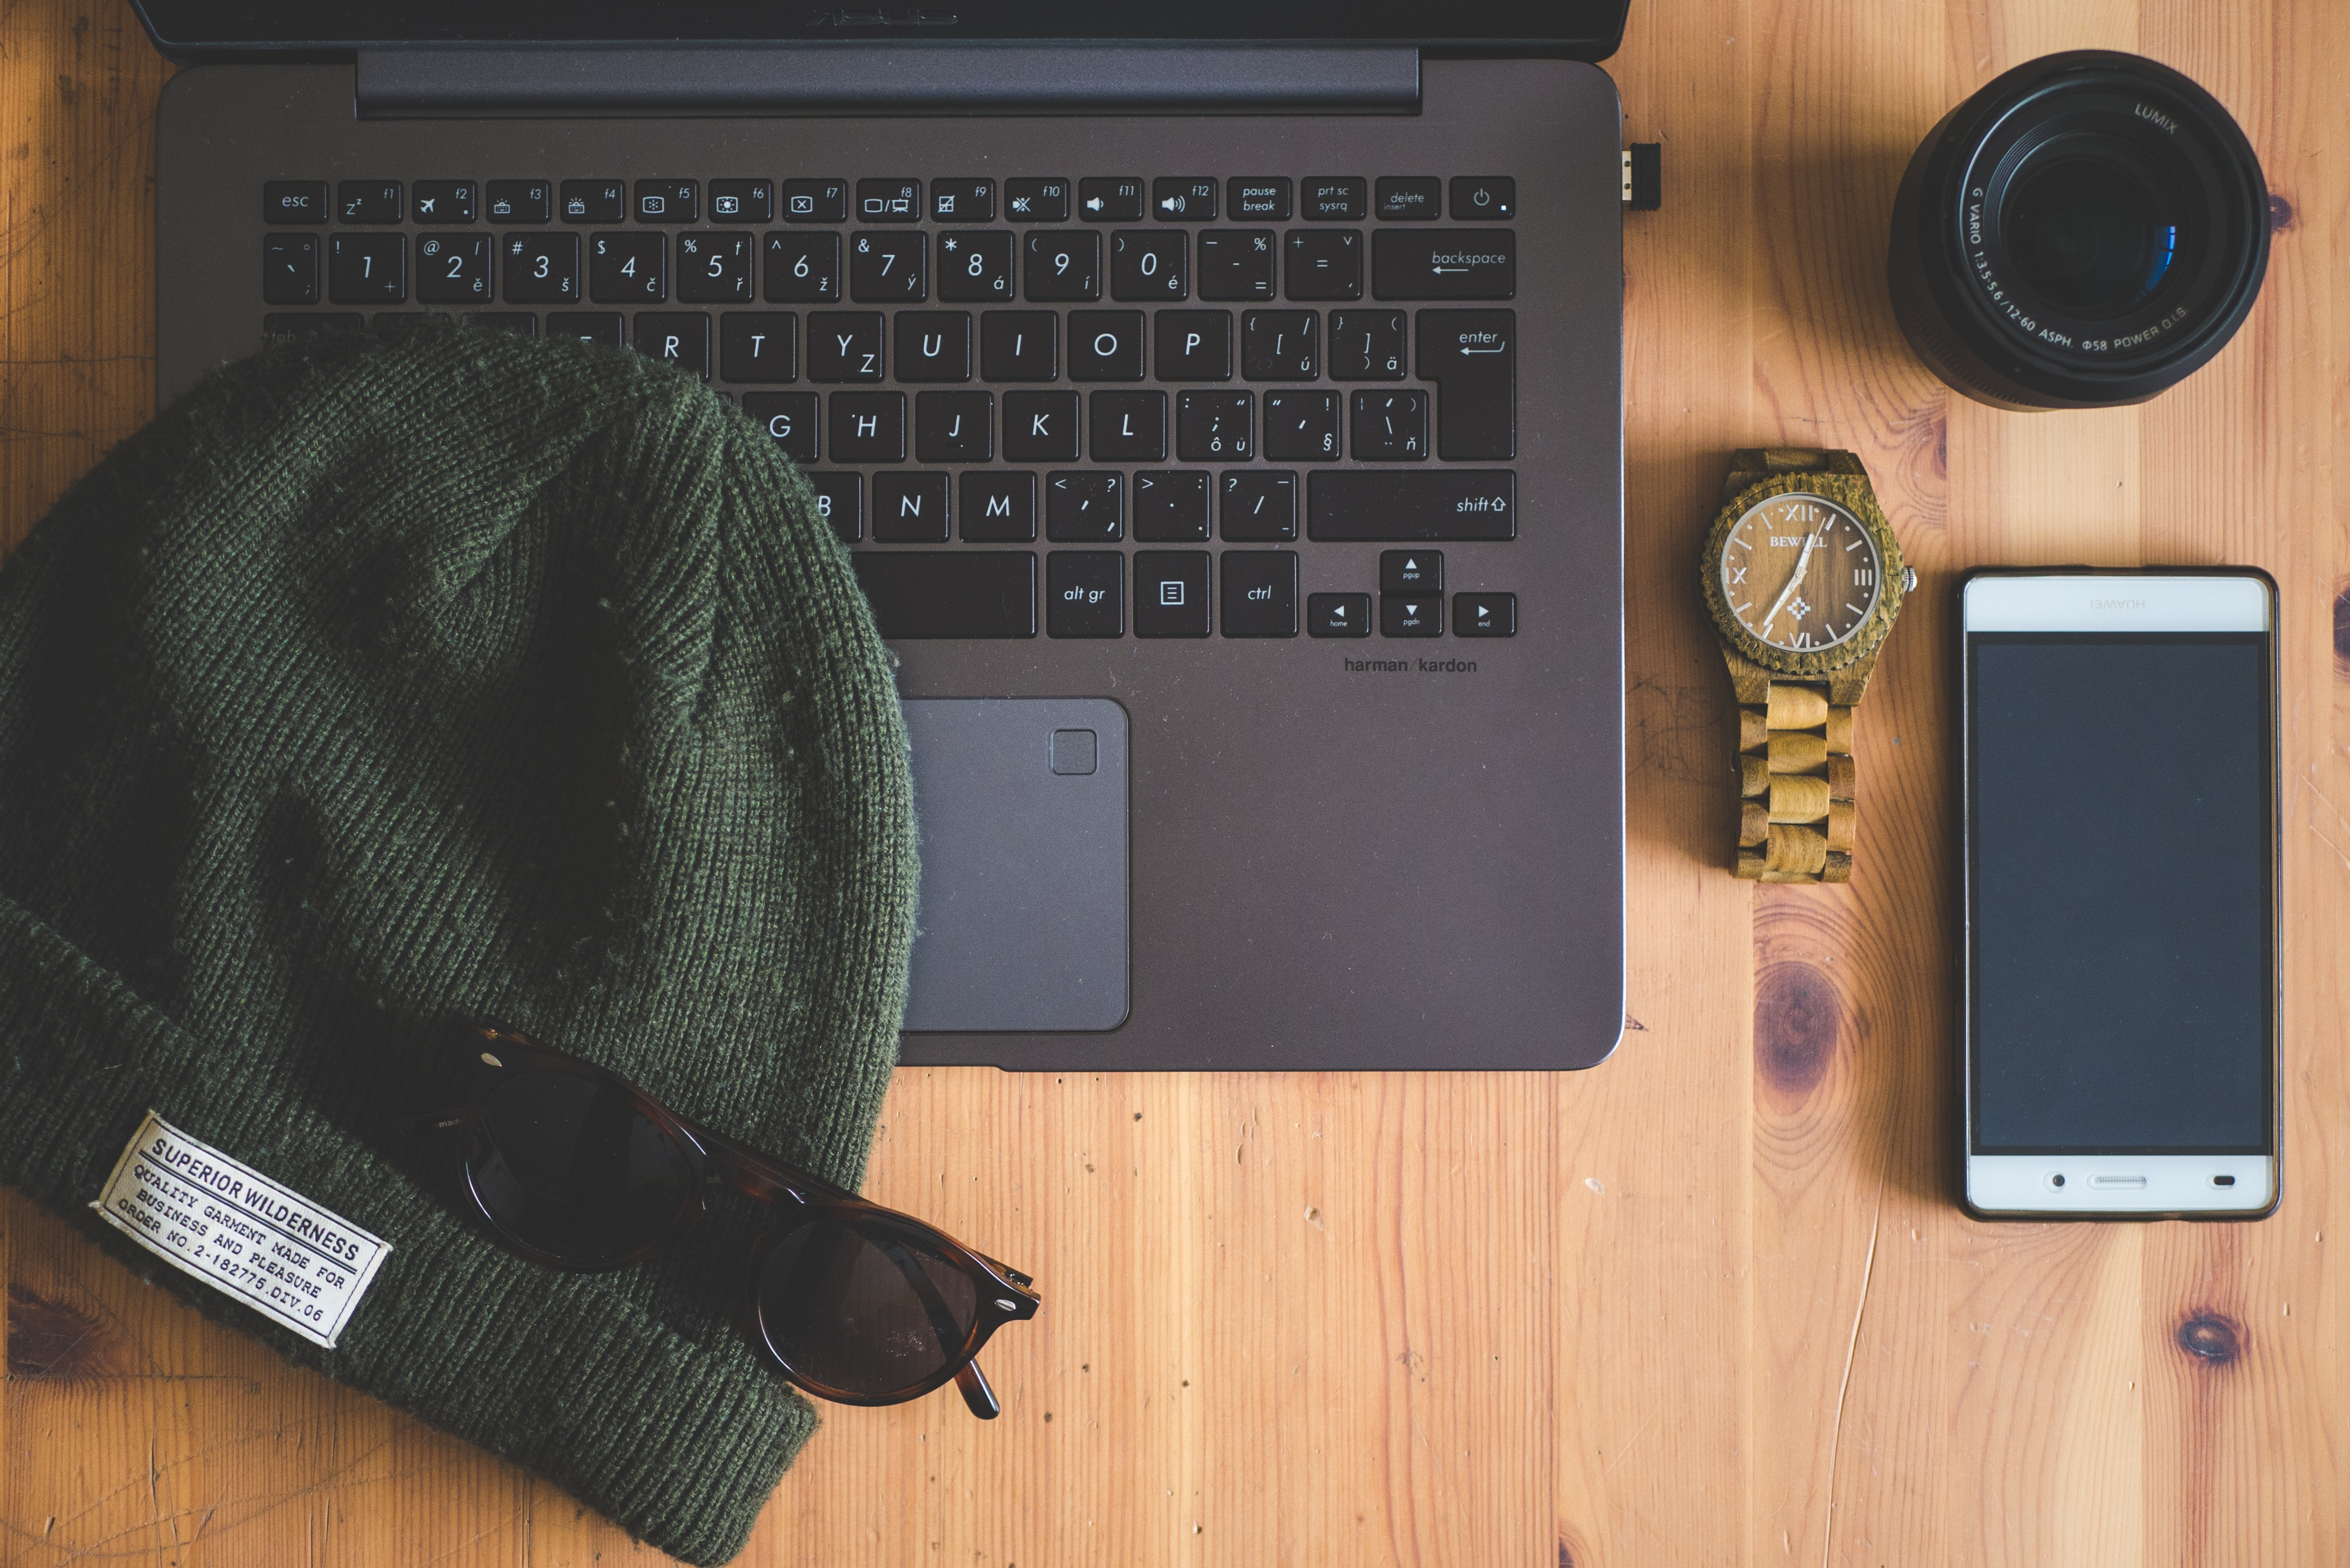 green knit cap on laptop near watch, smartphone, and camera lens